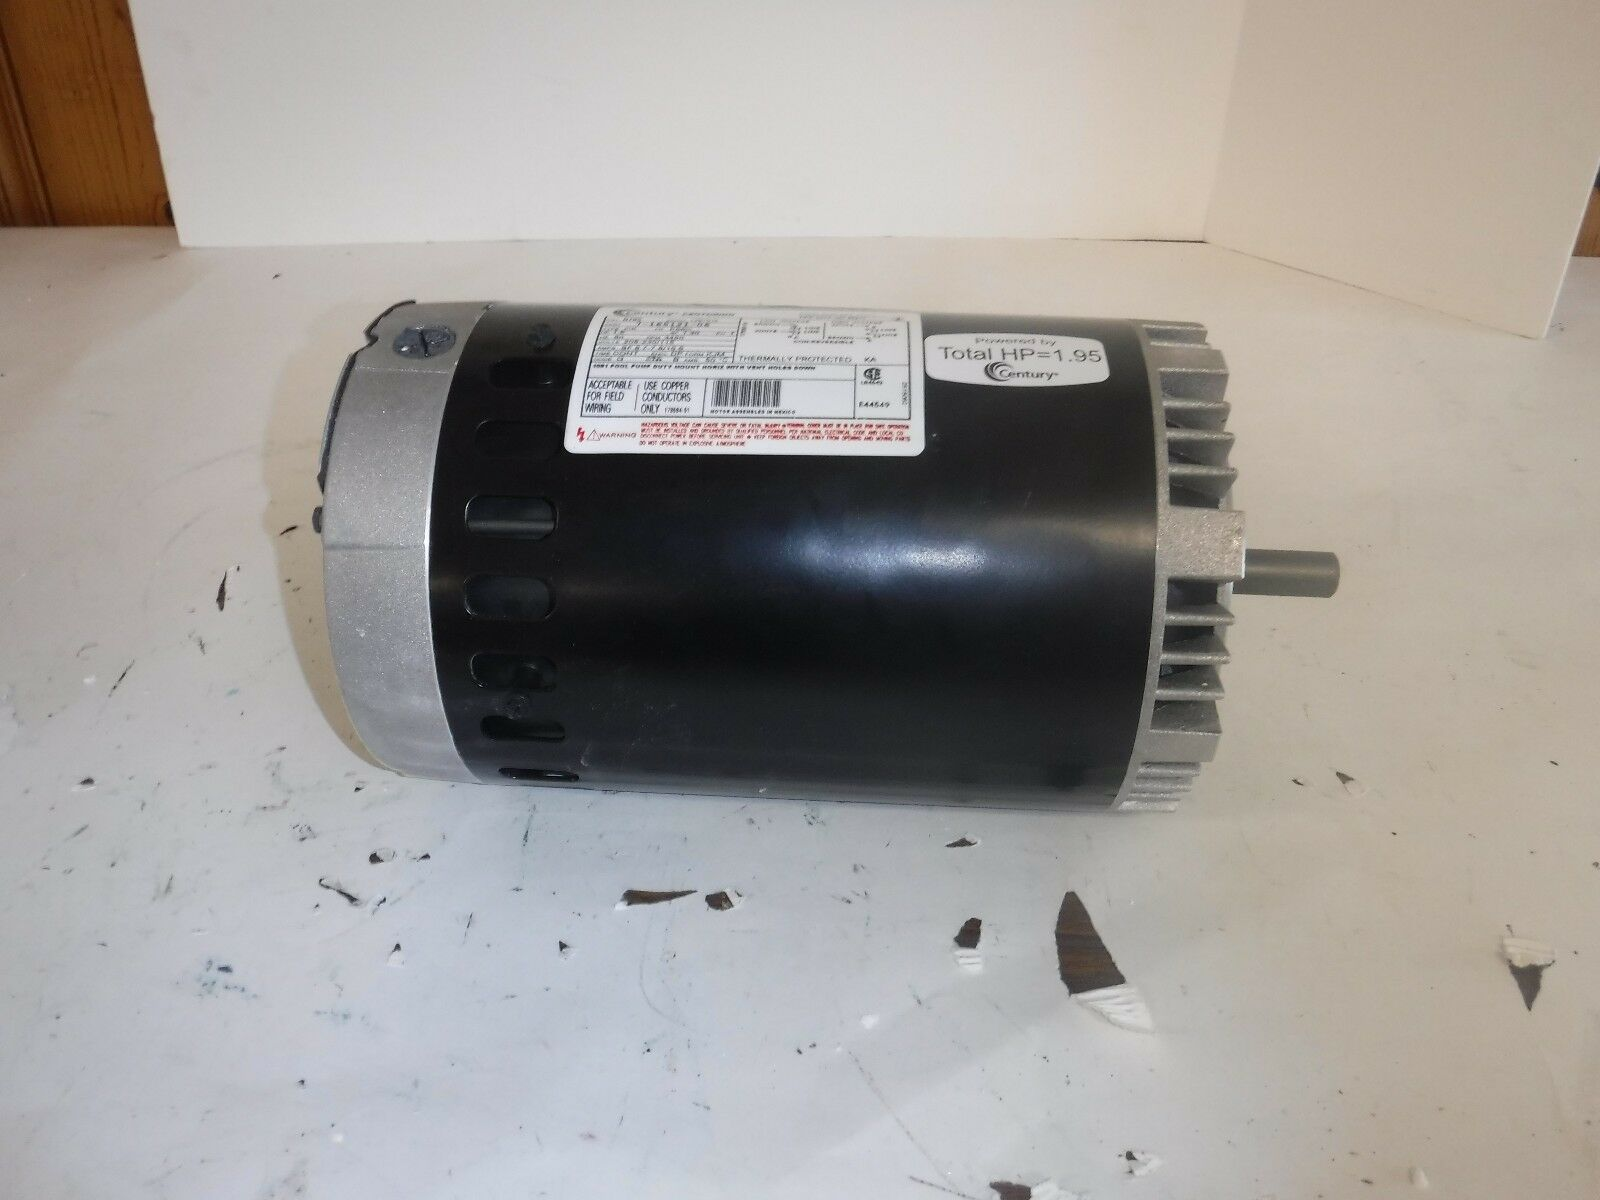 NEW 1-1/2 HP Pool and and and Spa Pump Motor, Permanent Split Capacitor (T) 4ae287